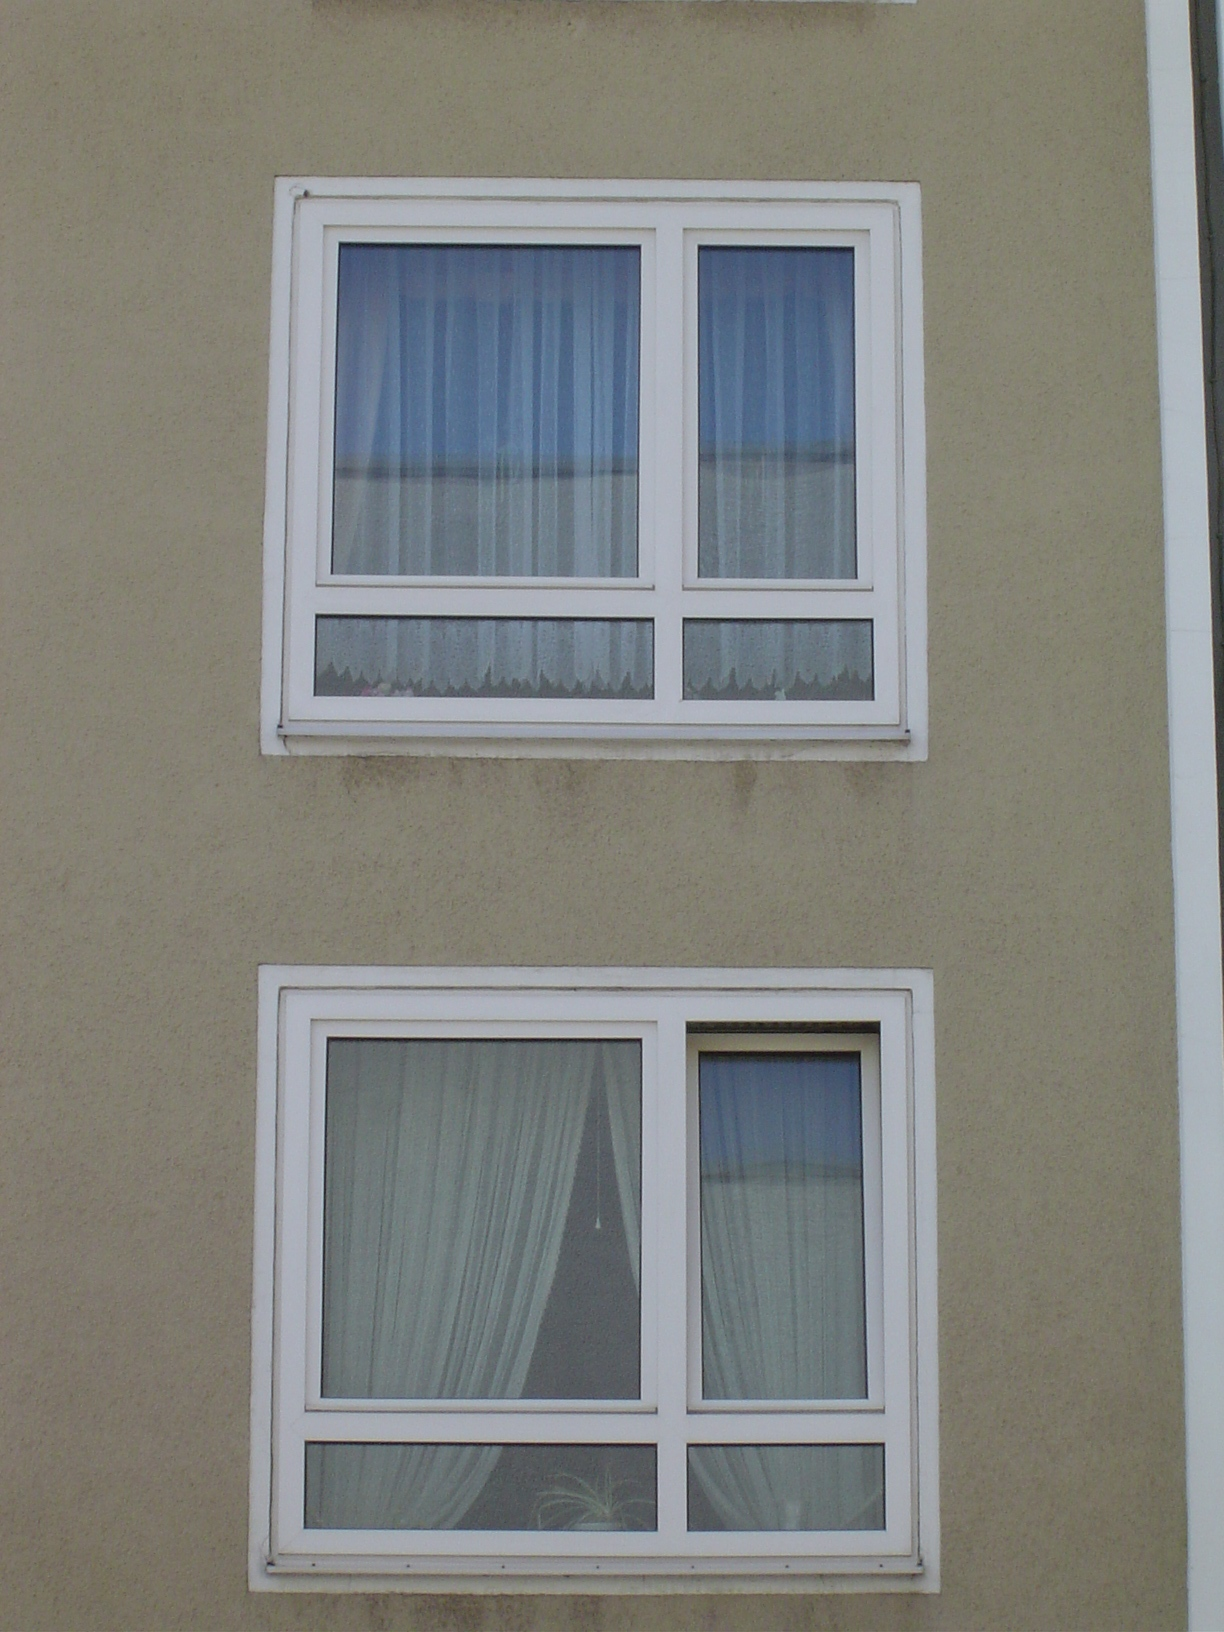 Image After Textures Rigoletto Window Windows Wall